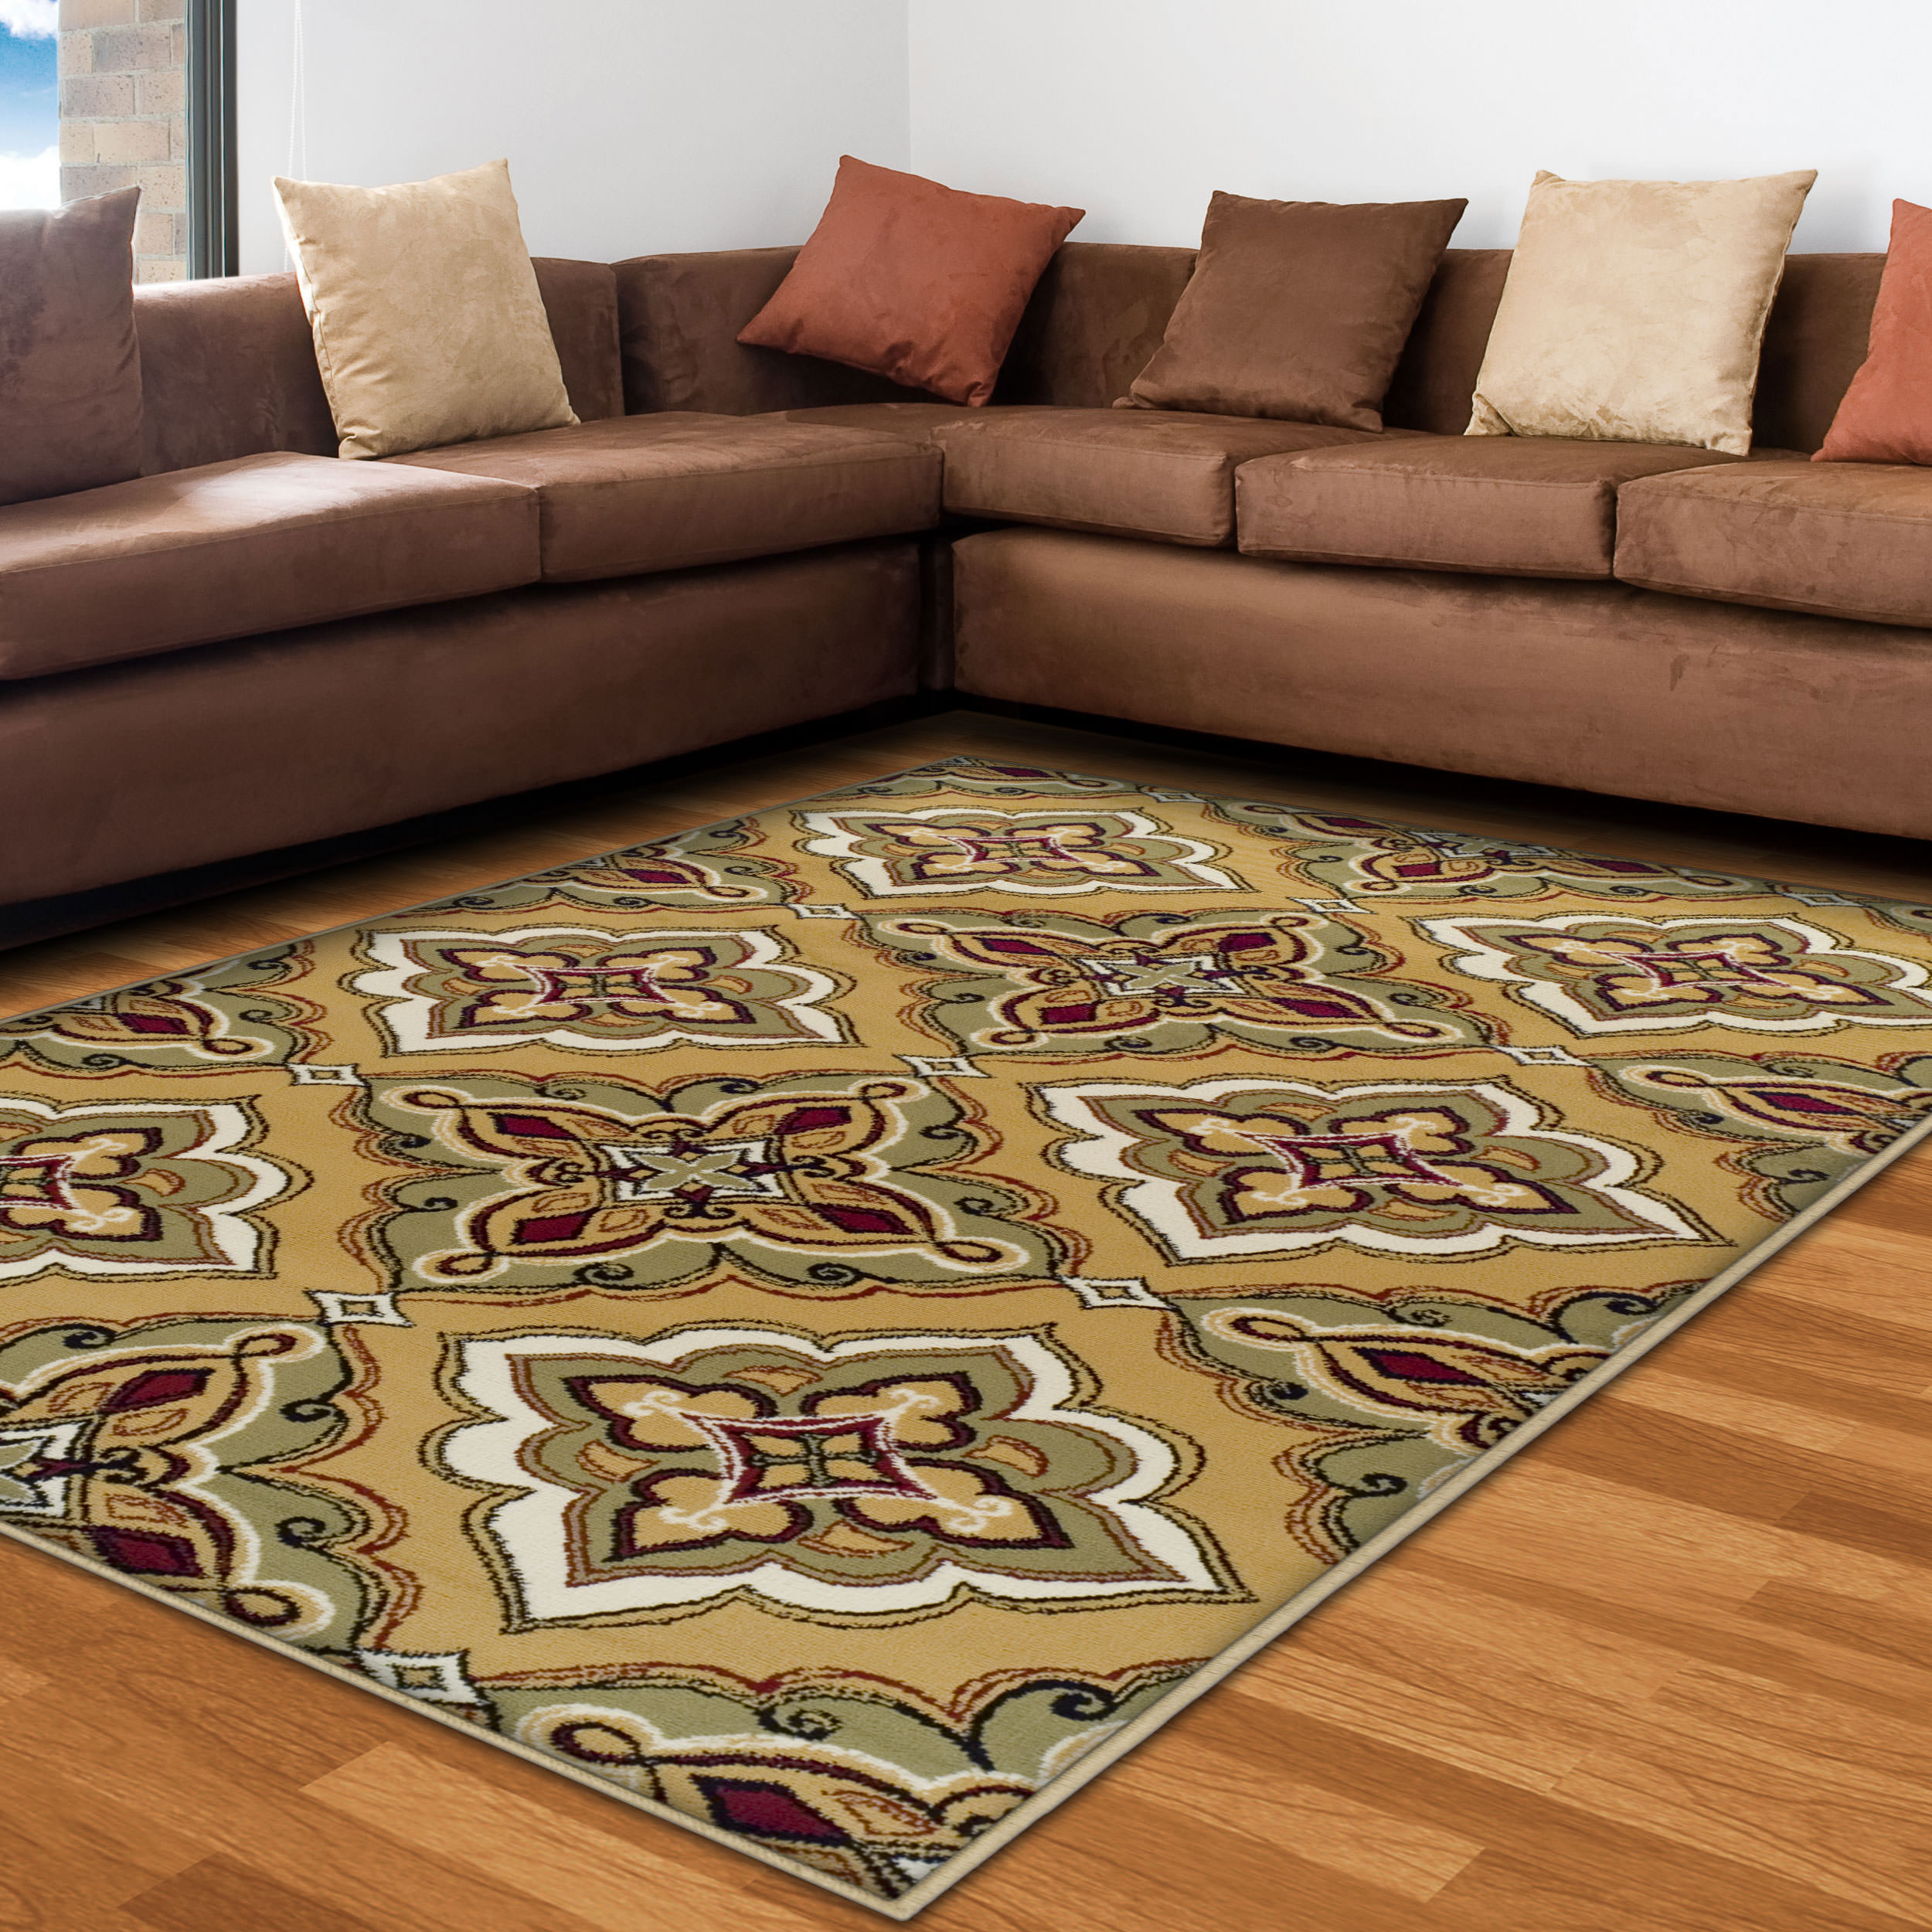 Superior Crawford Collection with 8mm Pile and Jute Backing, Moisture Resistant and Anti-Static Indoor Area Rug